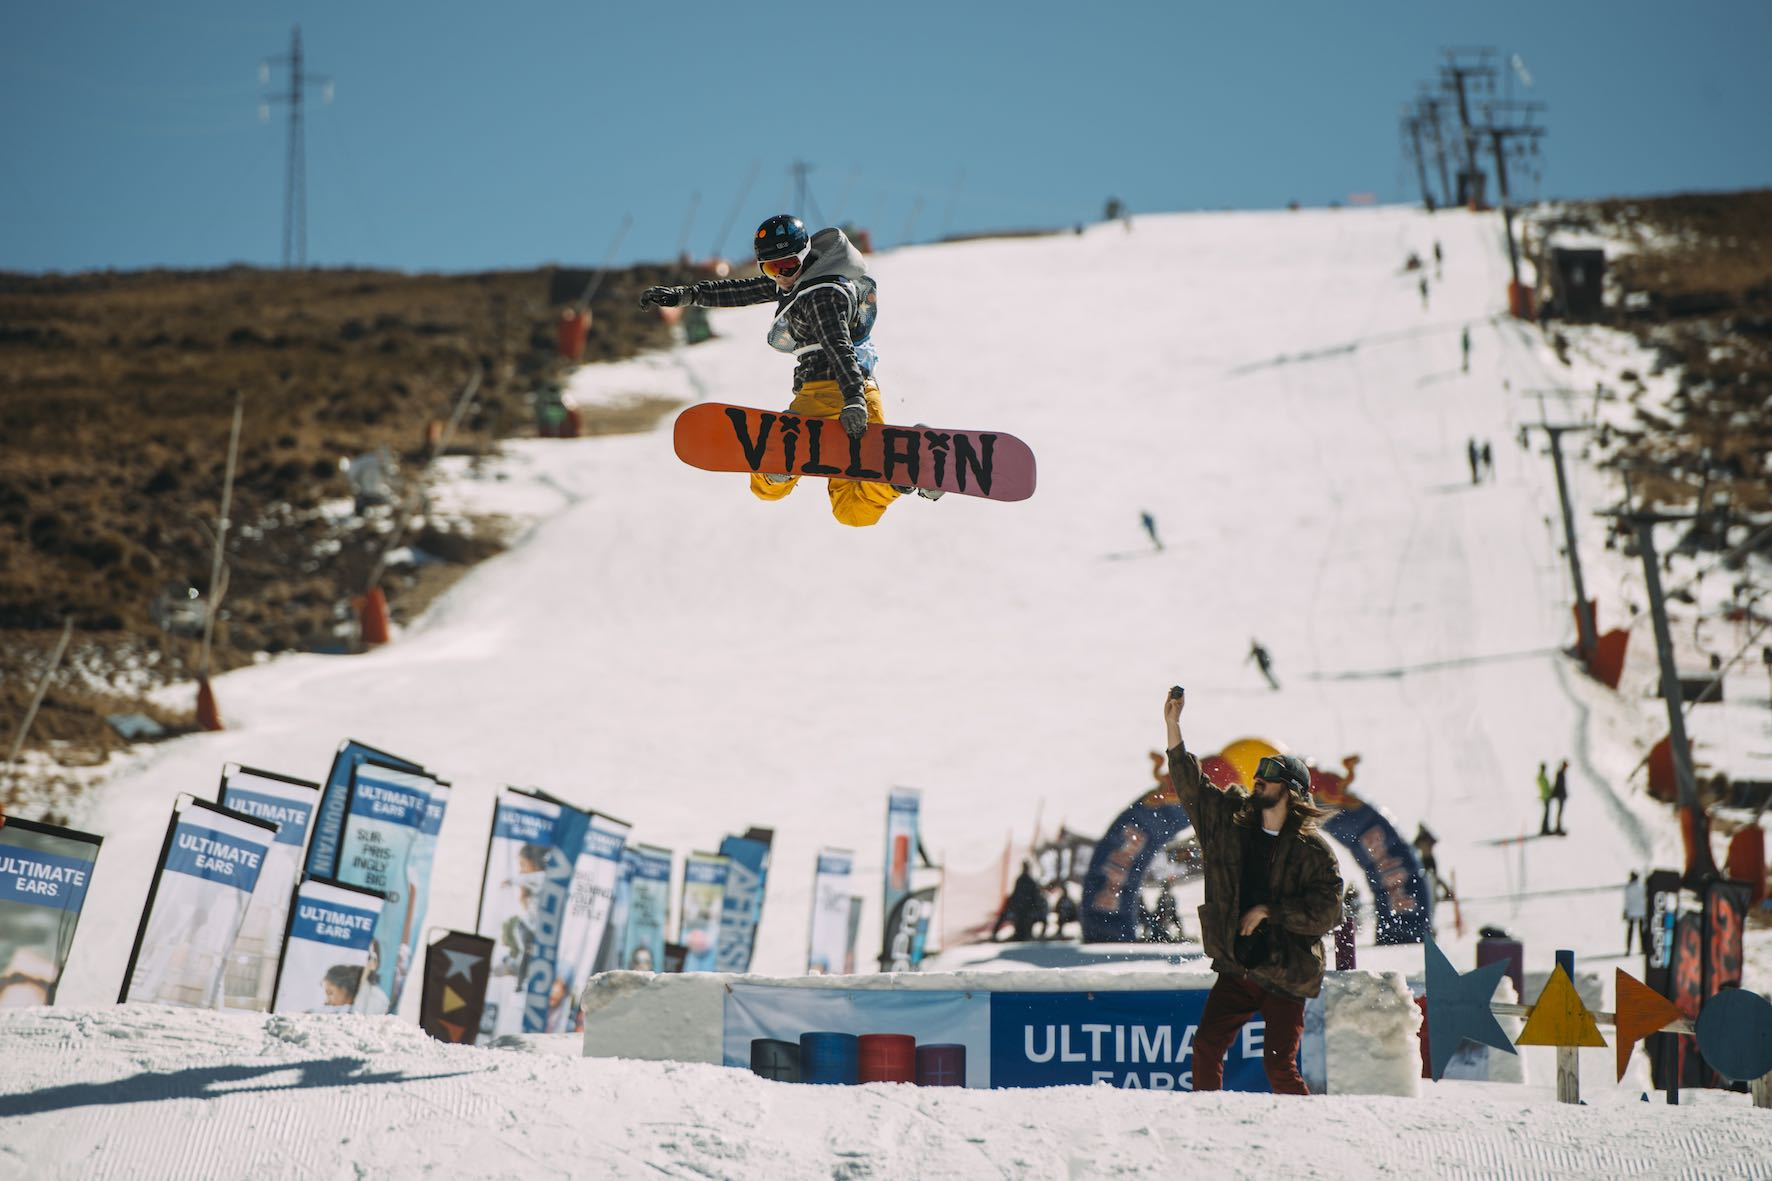 Dean Cowley snowboarding in the 2019 2019 Ultimate Ears Winter Whip Snowboard and Ski Festival